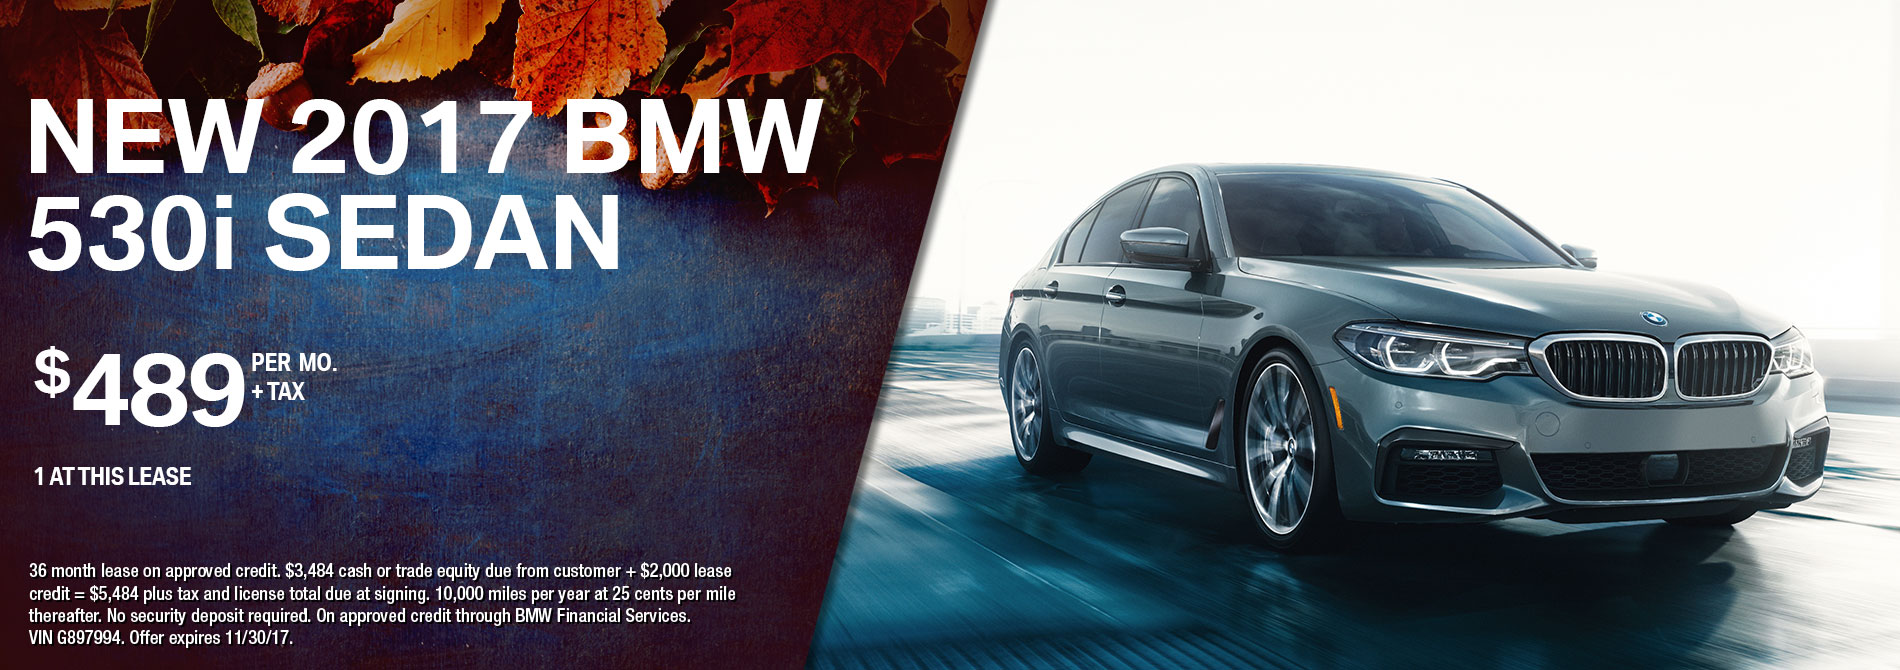 2017 bmw 530i sedan lease for 489 mo for 36 mo 3 484 plus tax and license due at signing vin g897994 offer ends 11 30 17